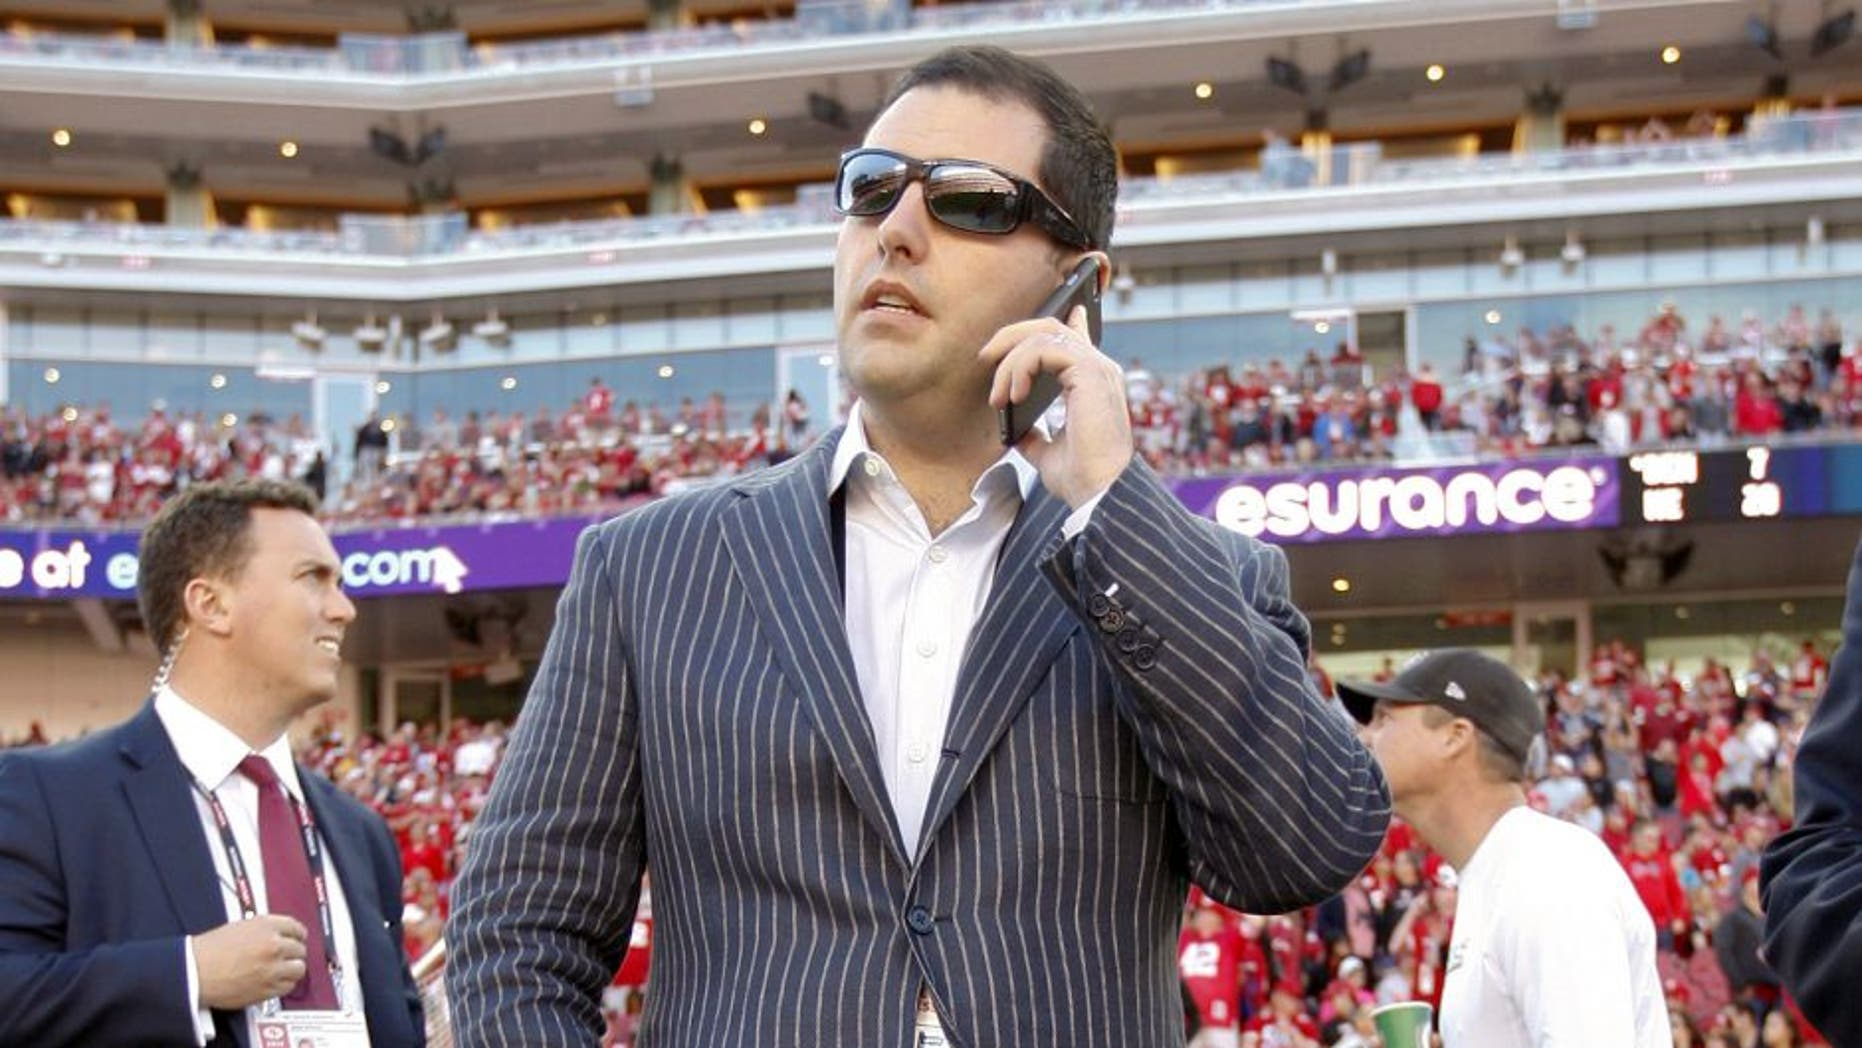 SANTA CLARA, CA - NOVEMBER 2: CEO Jed York of the San Francisco 49ers stands on the sideline during halftime of the game against the St. Louis Rams at Levi Stadium on November 2, 2014 in Santa Clara, California. The Rams defeated the 49ers 13-10. (Photo by Michael Zagaris/San Francisco 49ers/Getty Images)